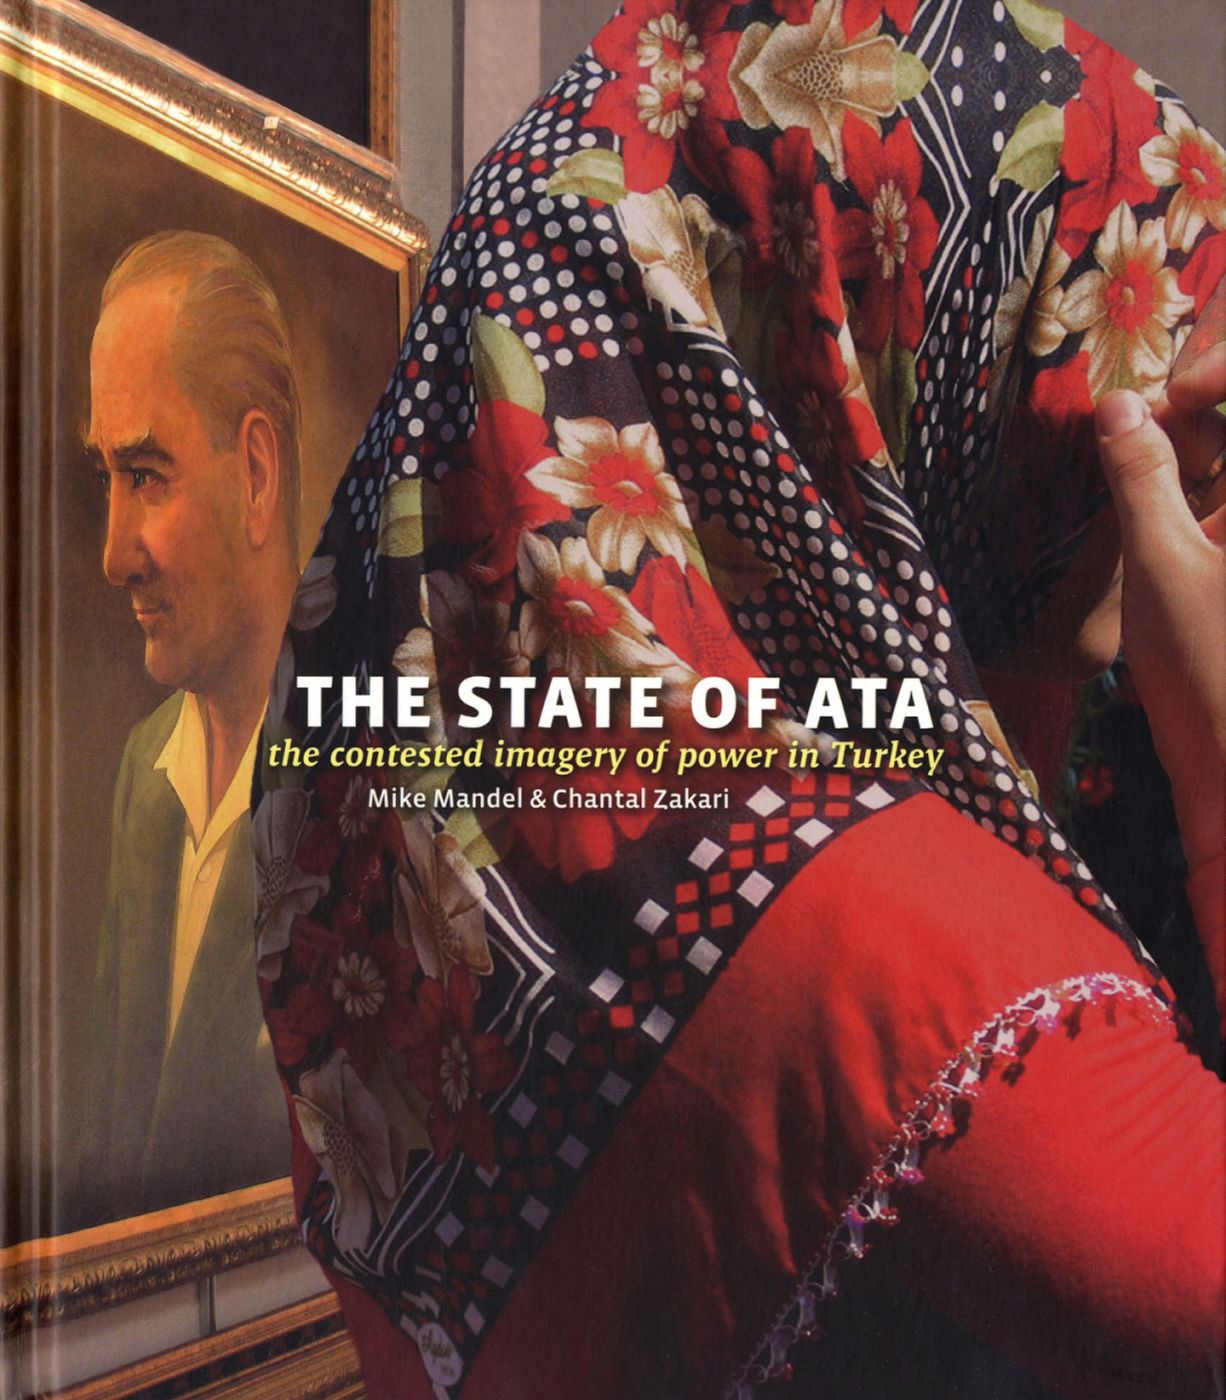 Mike Mandel and Chantal Zakari: The State of Ata: The Contested Imagery of Power in Turkey [SIGNED by Mandel and Zakari]